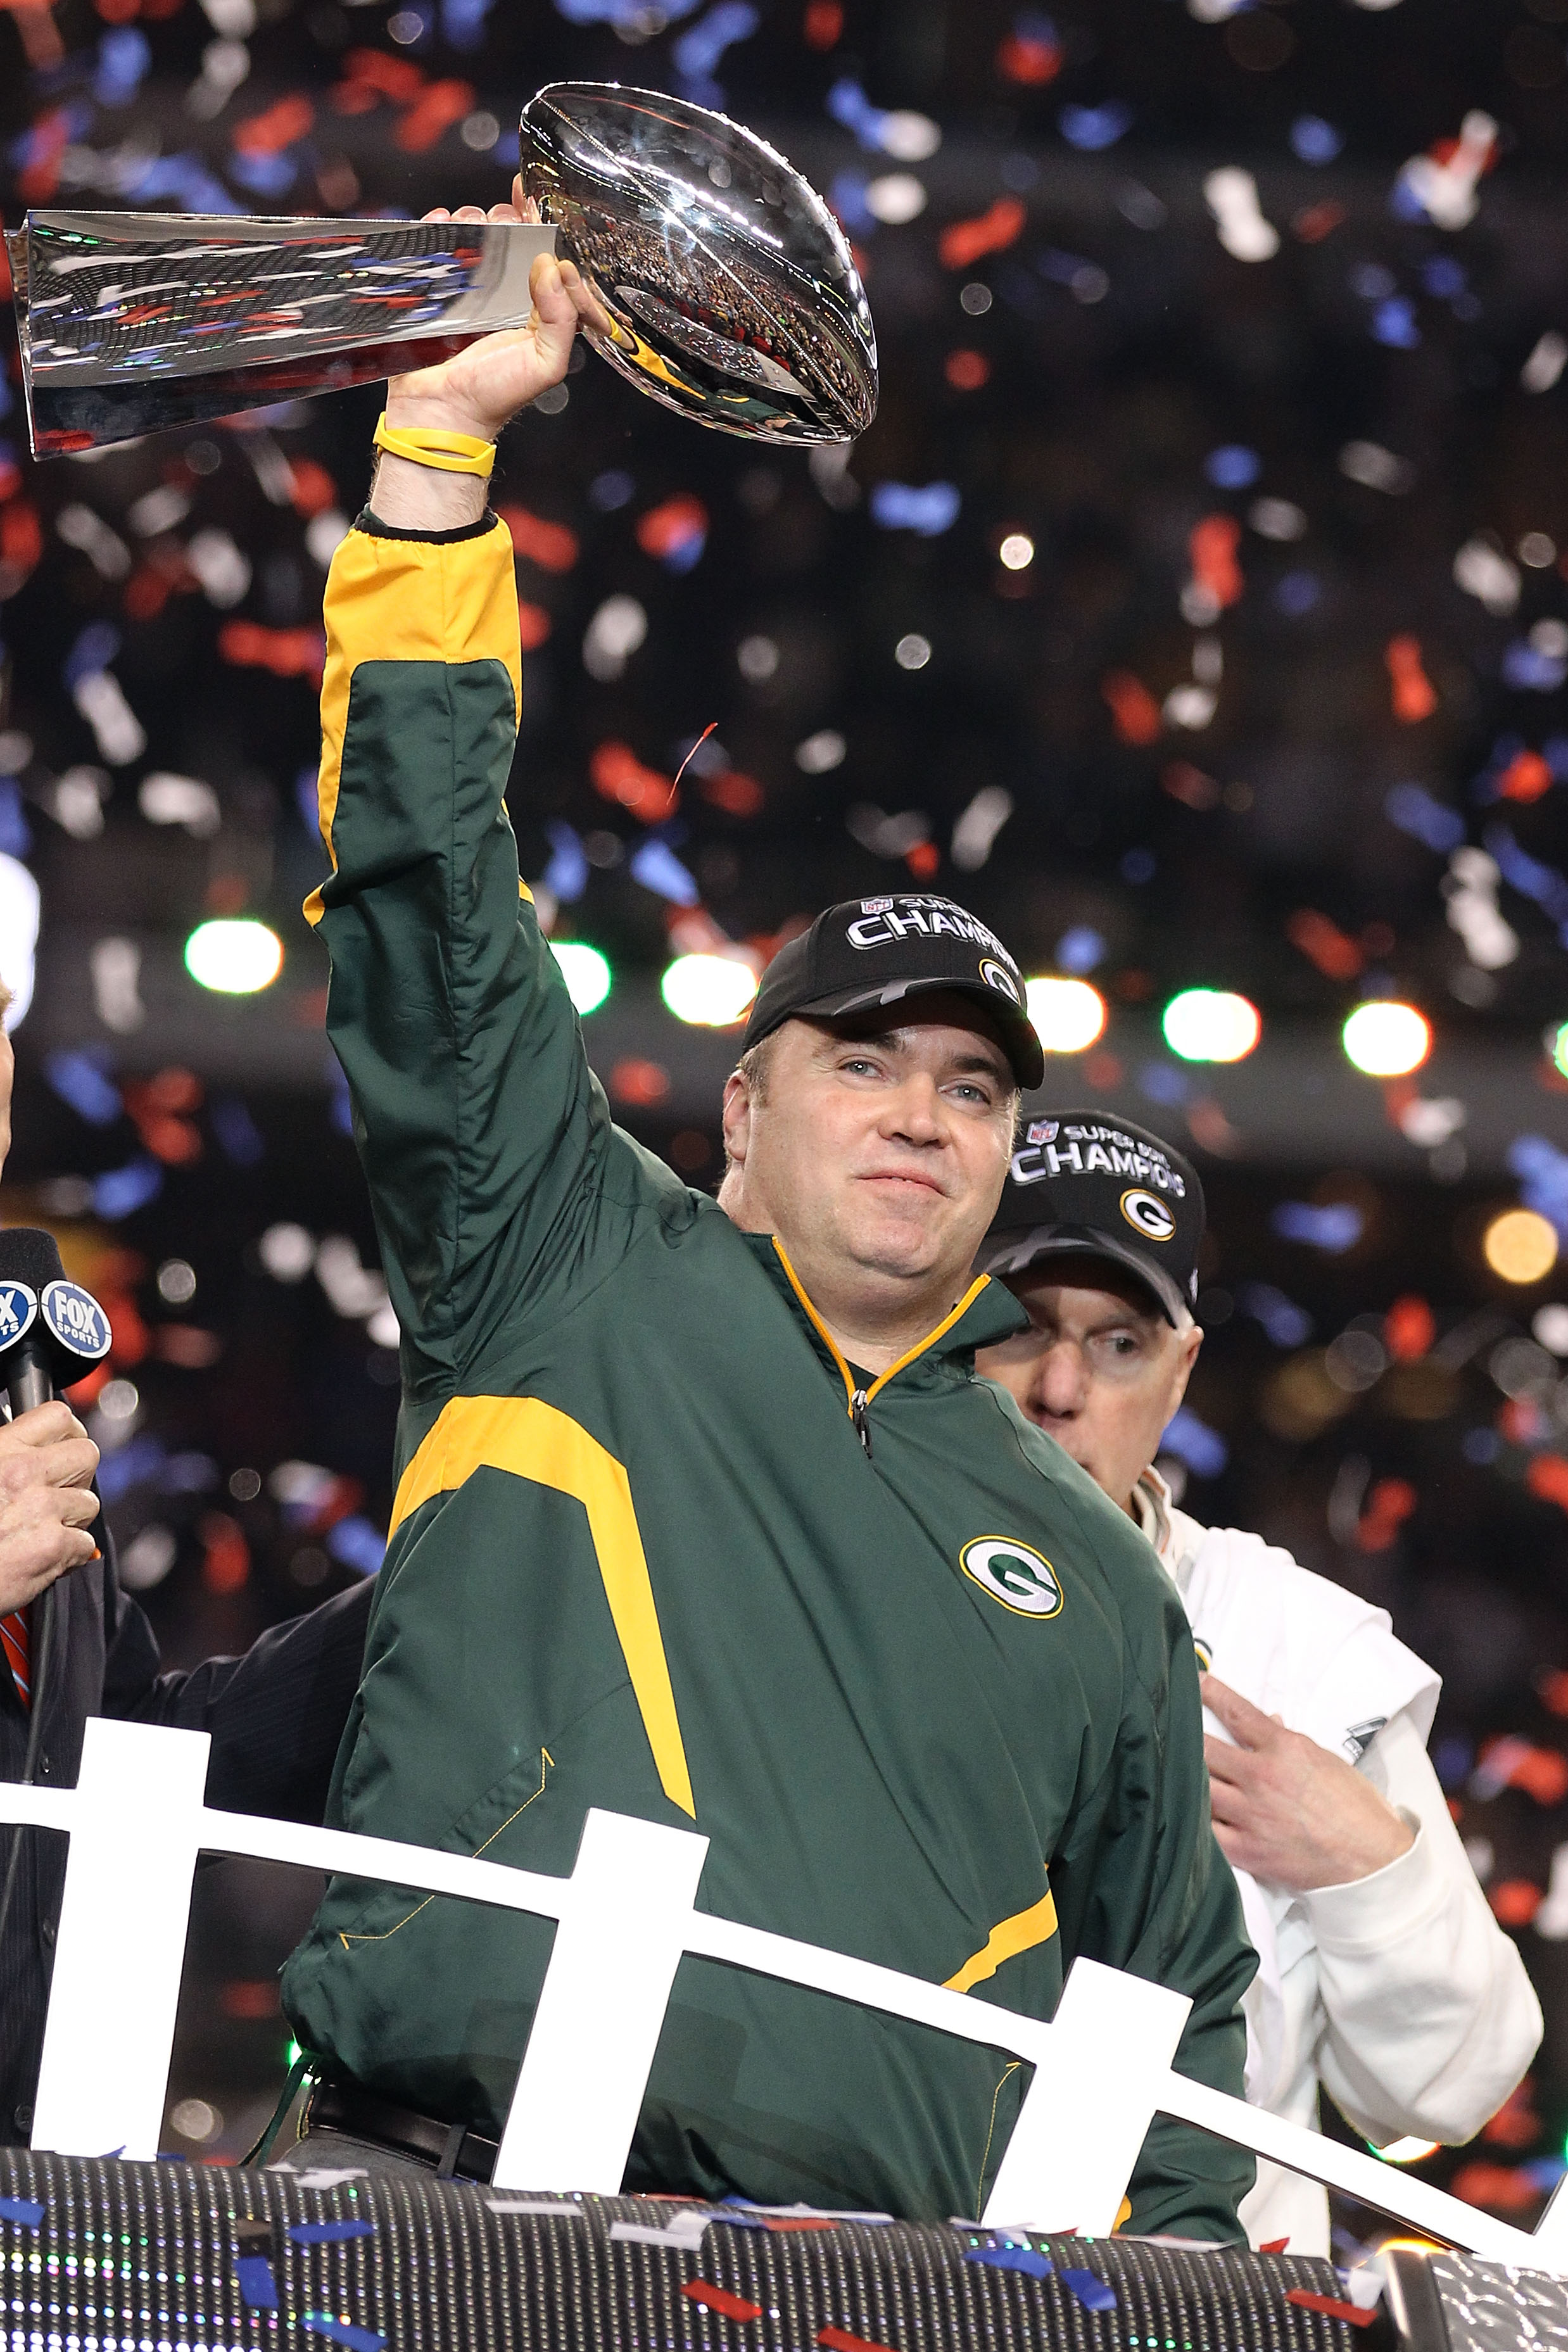 ARLINGTON, TX - FEBRUARY 06: Head coach Mike McCarthy of the Green Bay Packers holds up the Vince Lombardi Trophy after winning Super Bowl XLV 31-25 against the Pittsburgh Steelers at Cowboys Stadium on February 6, 2011 in Arlington, Texas.  (Photo by Al